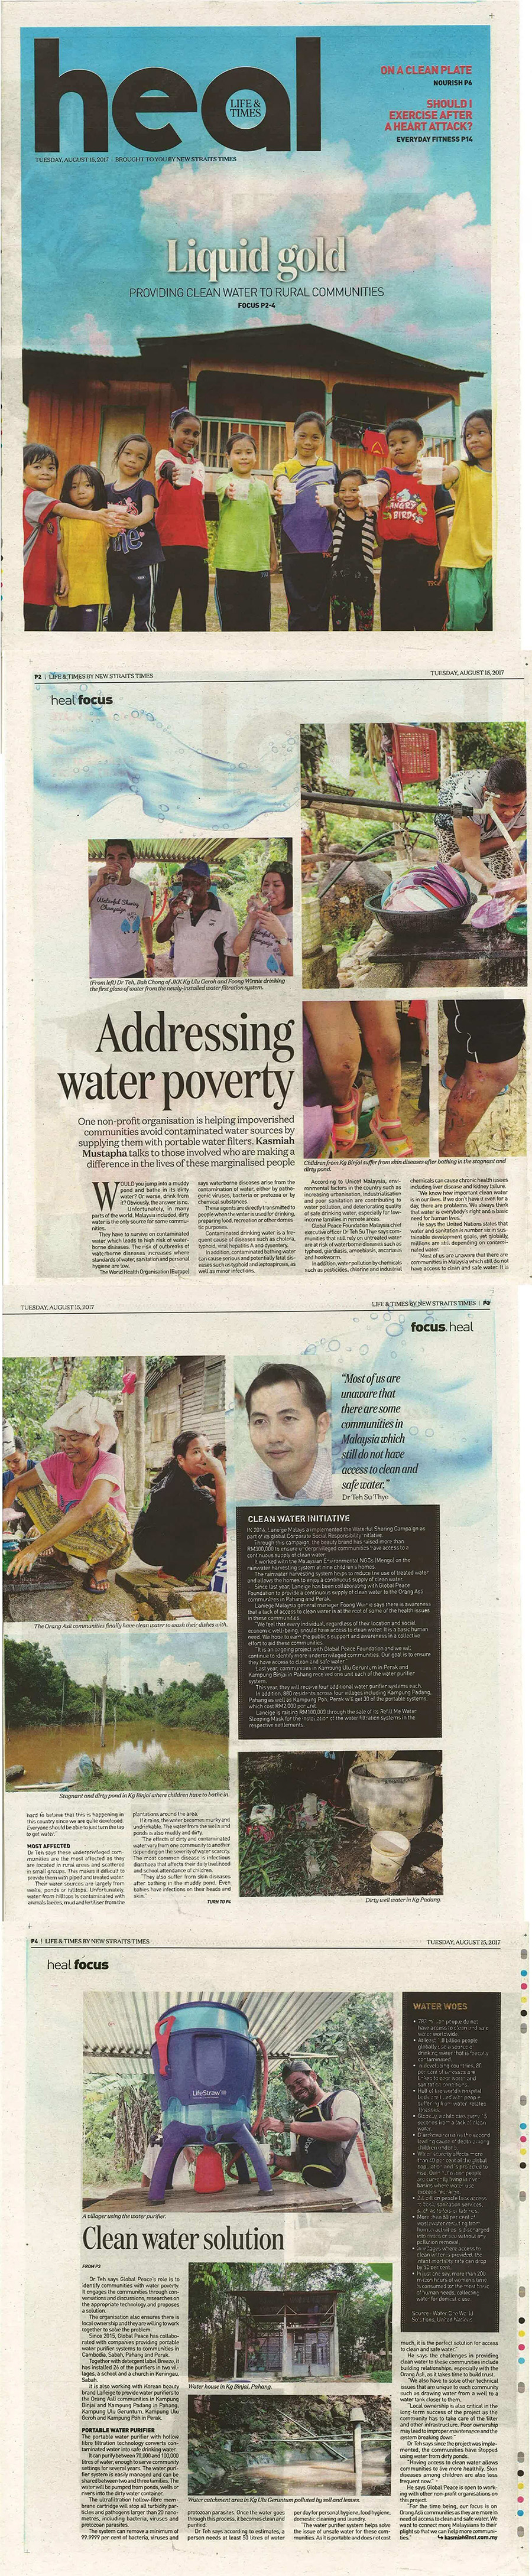 Addressing water poverty - New Straits Times